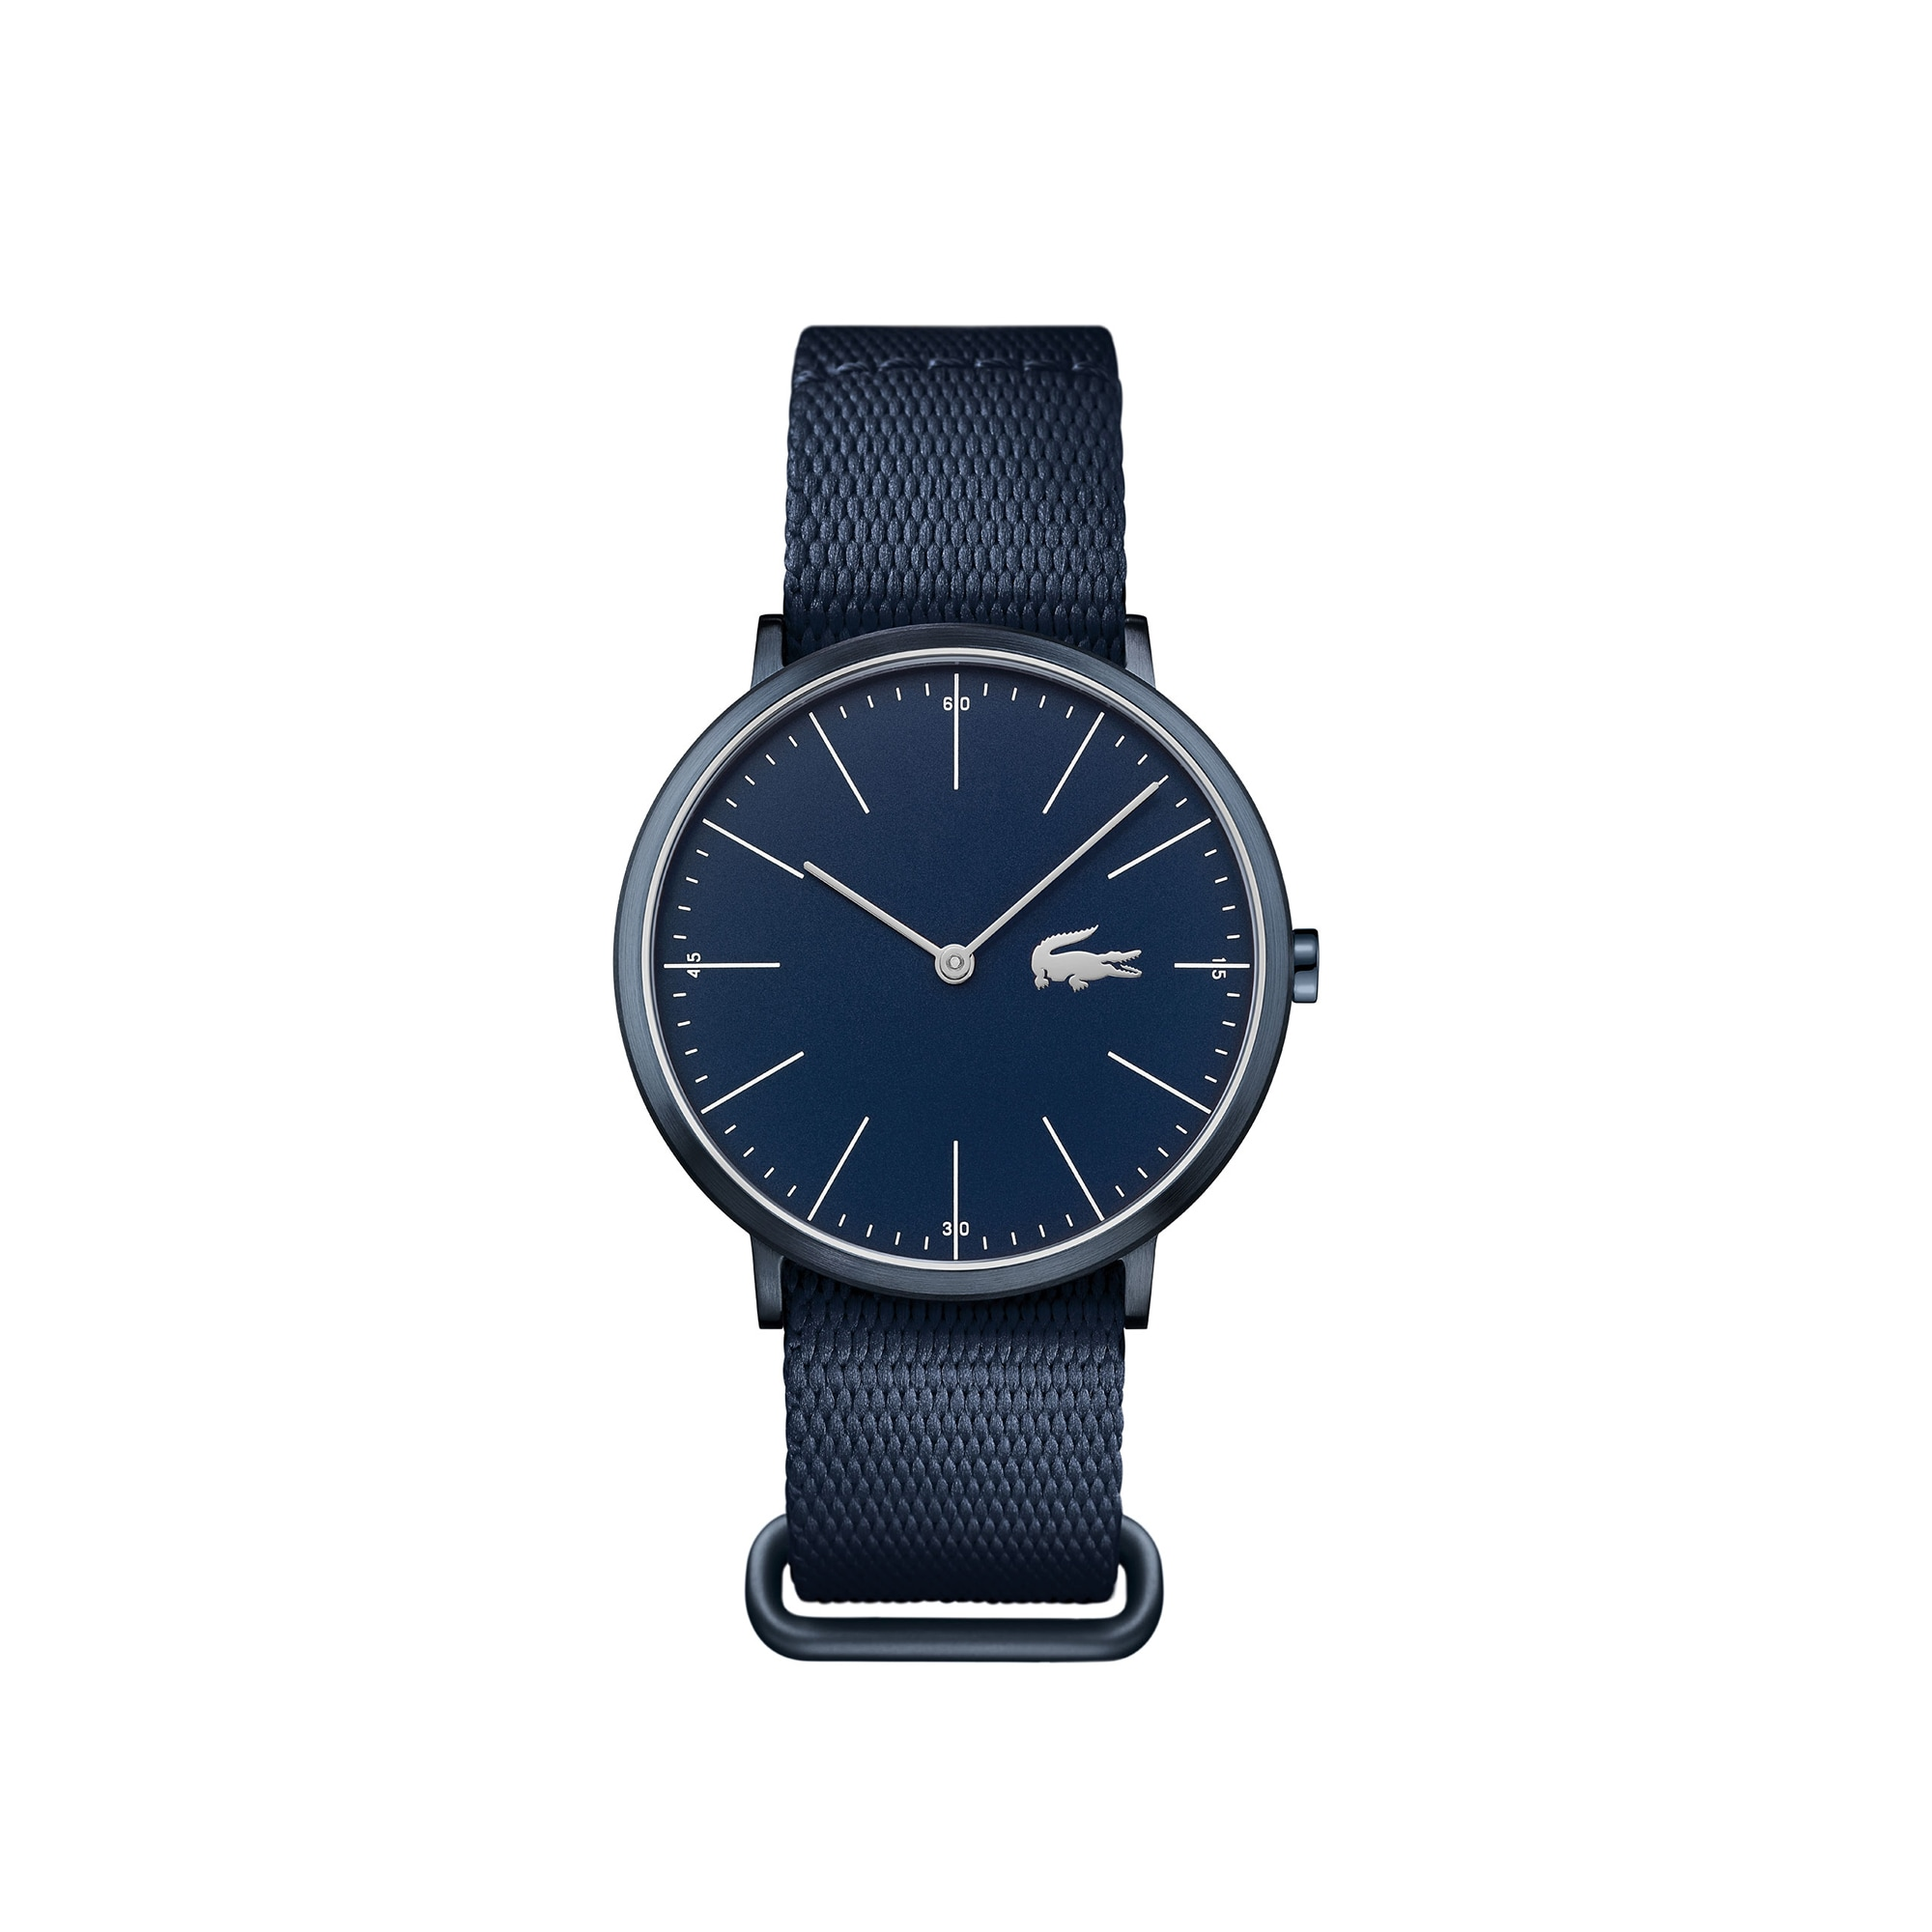 Lacoste Moon Watch Extra-slim blue - textile and leather strap